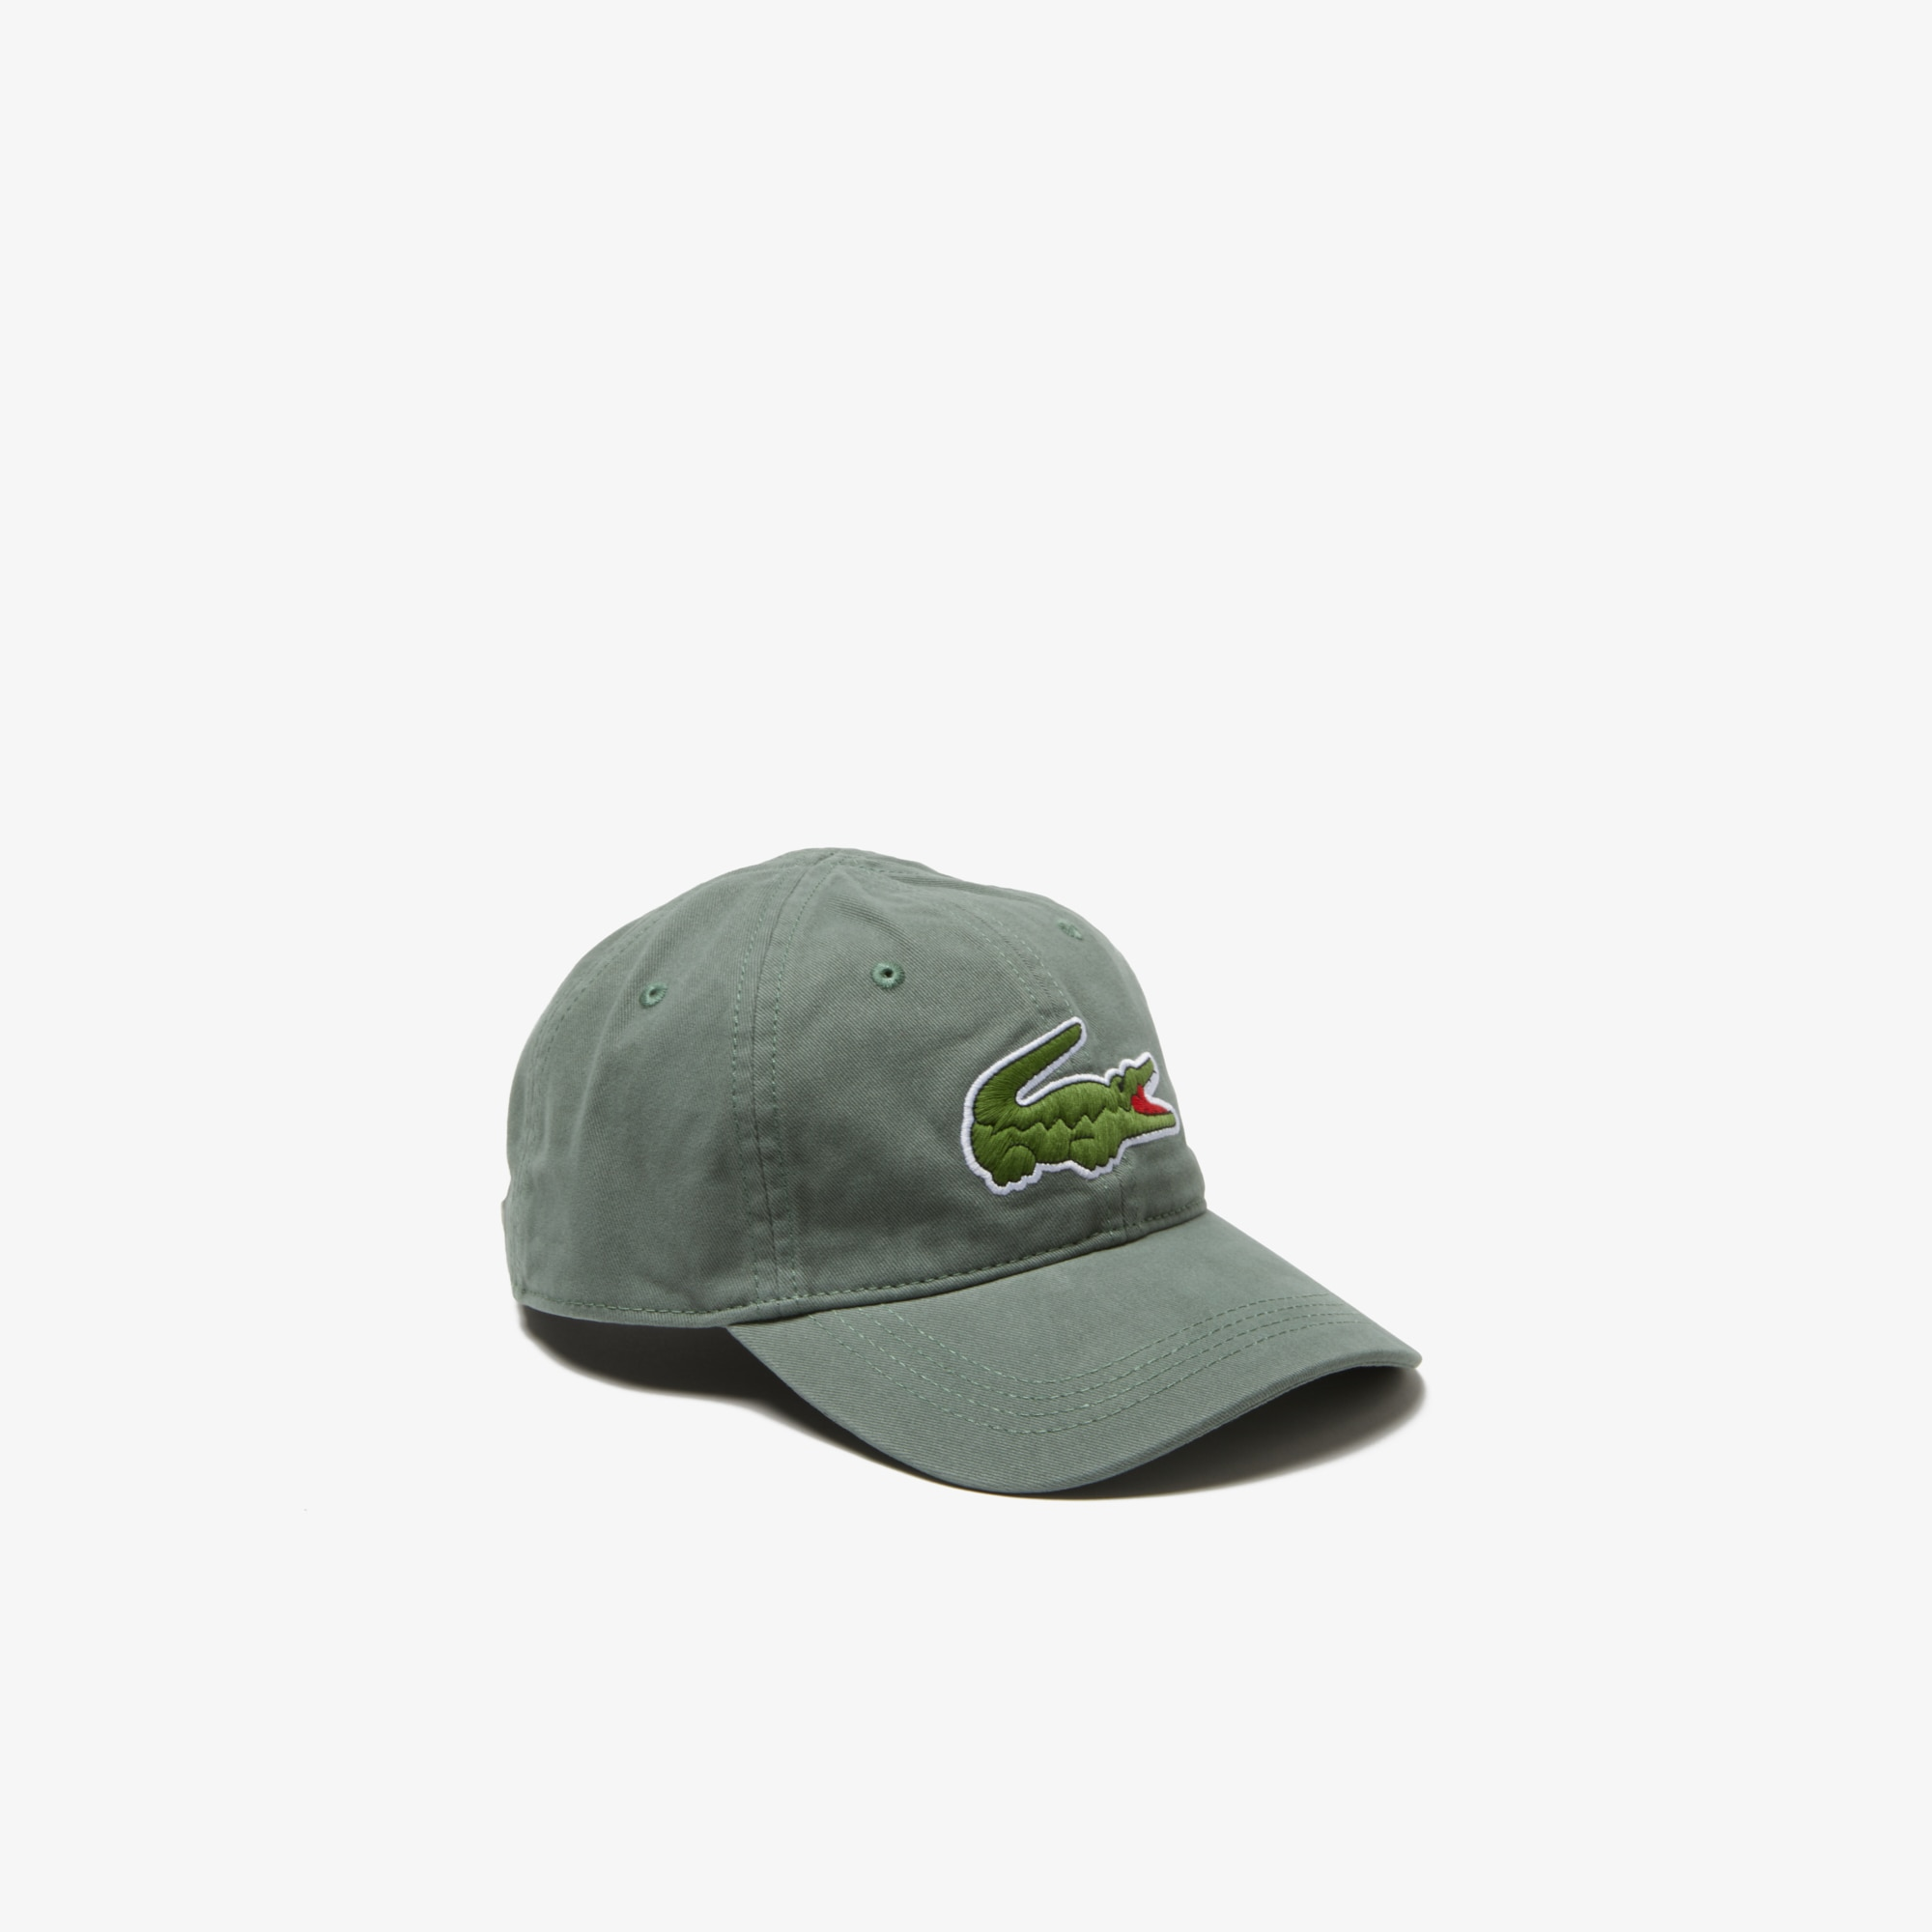 95f26b09 Men's SPORT Taffeta Cap. $35.00. Khaki Green · GRAPHITE GREY · Black · Navy  Blue. + 10 colors + 13 colors